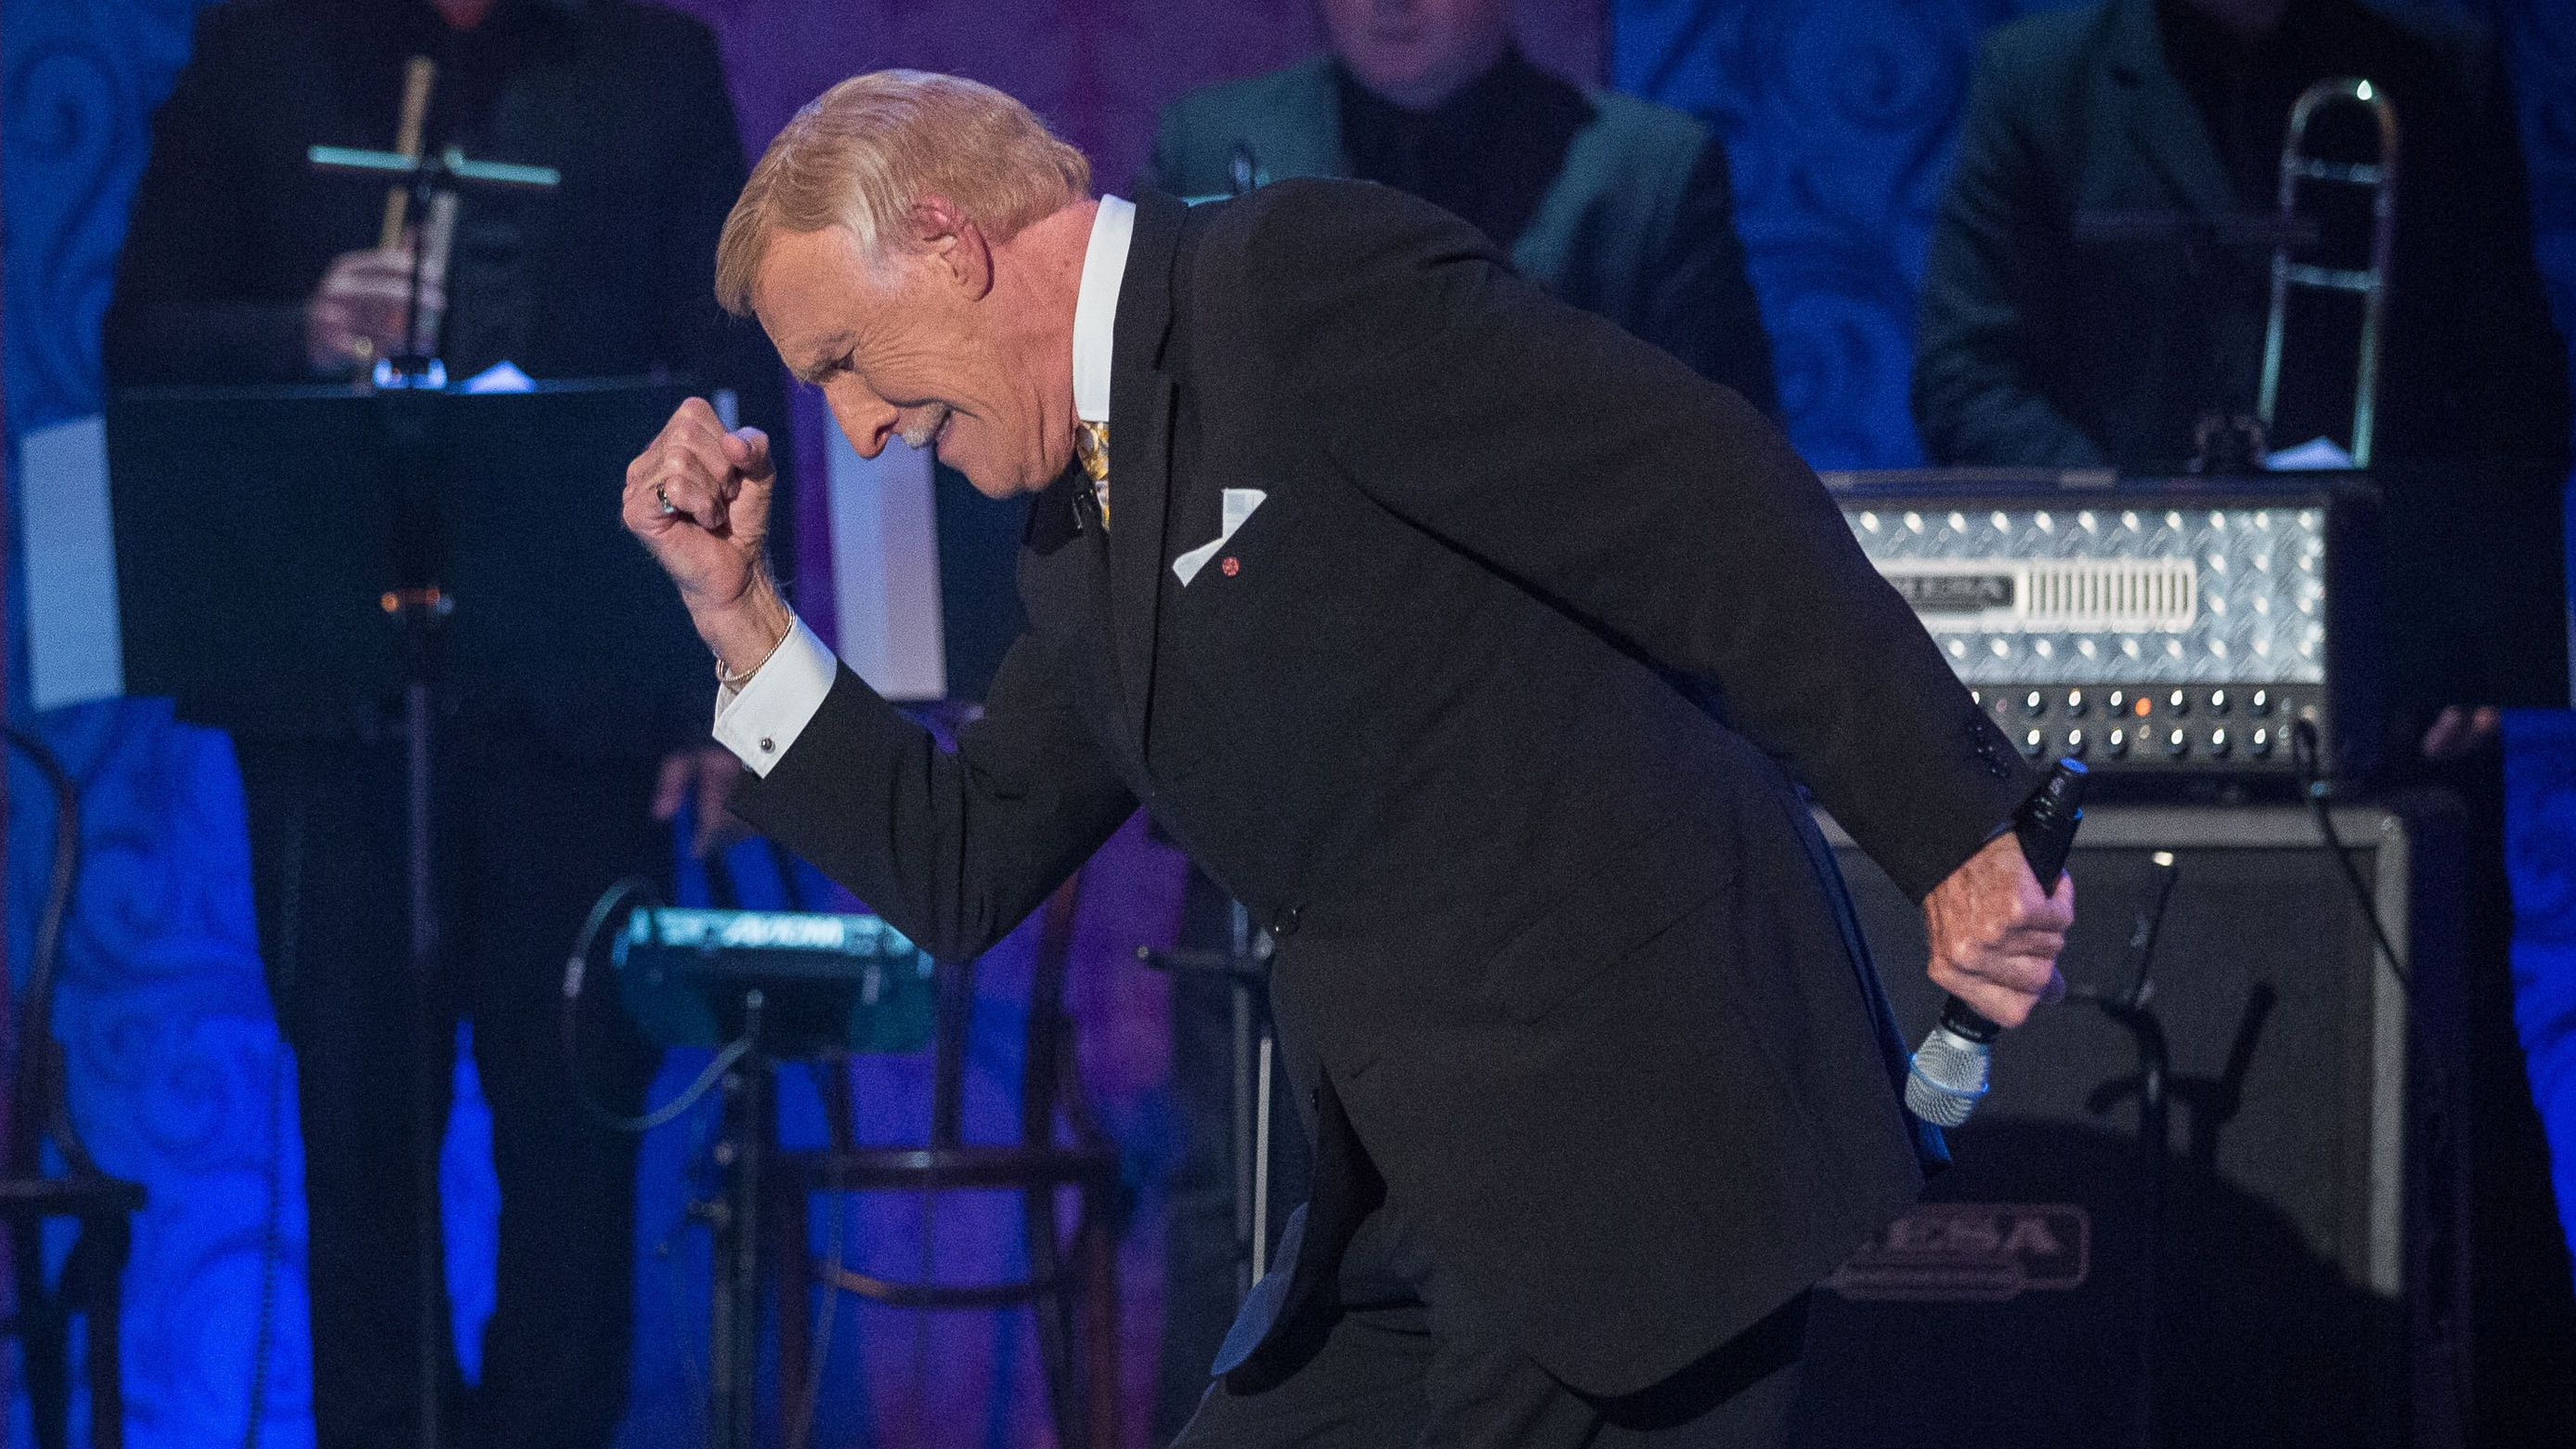 Sir Bruce Forsyth (BBC/Guy Levy)